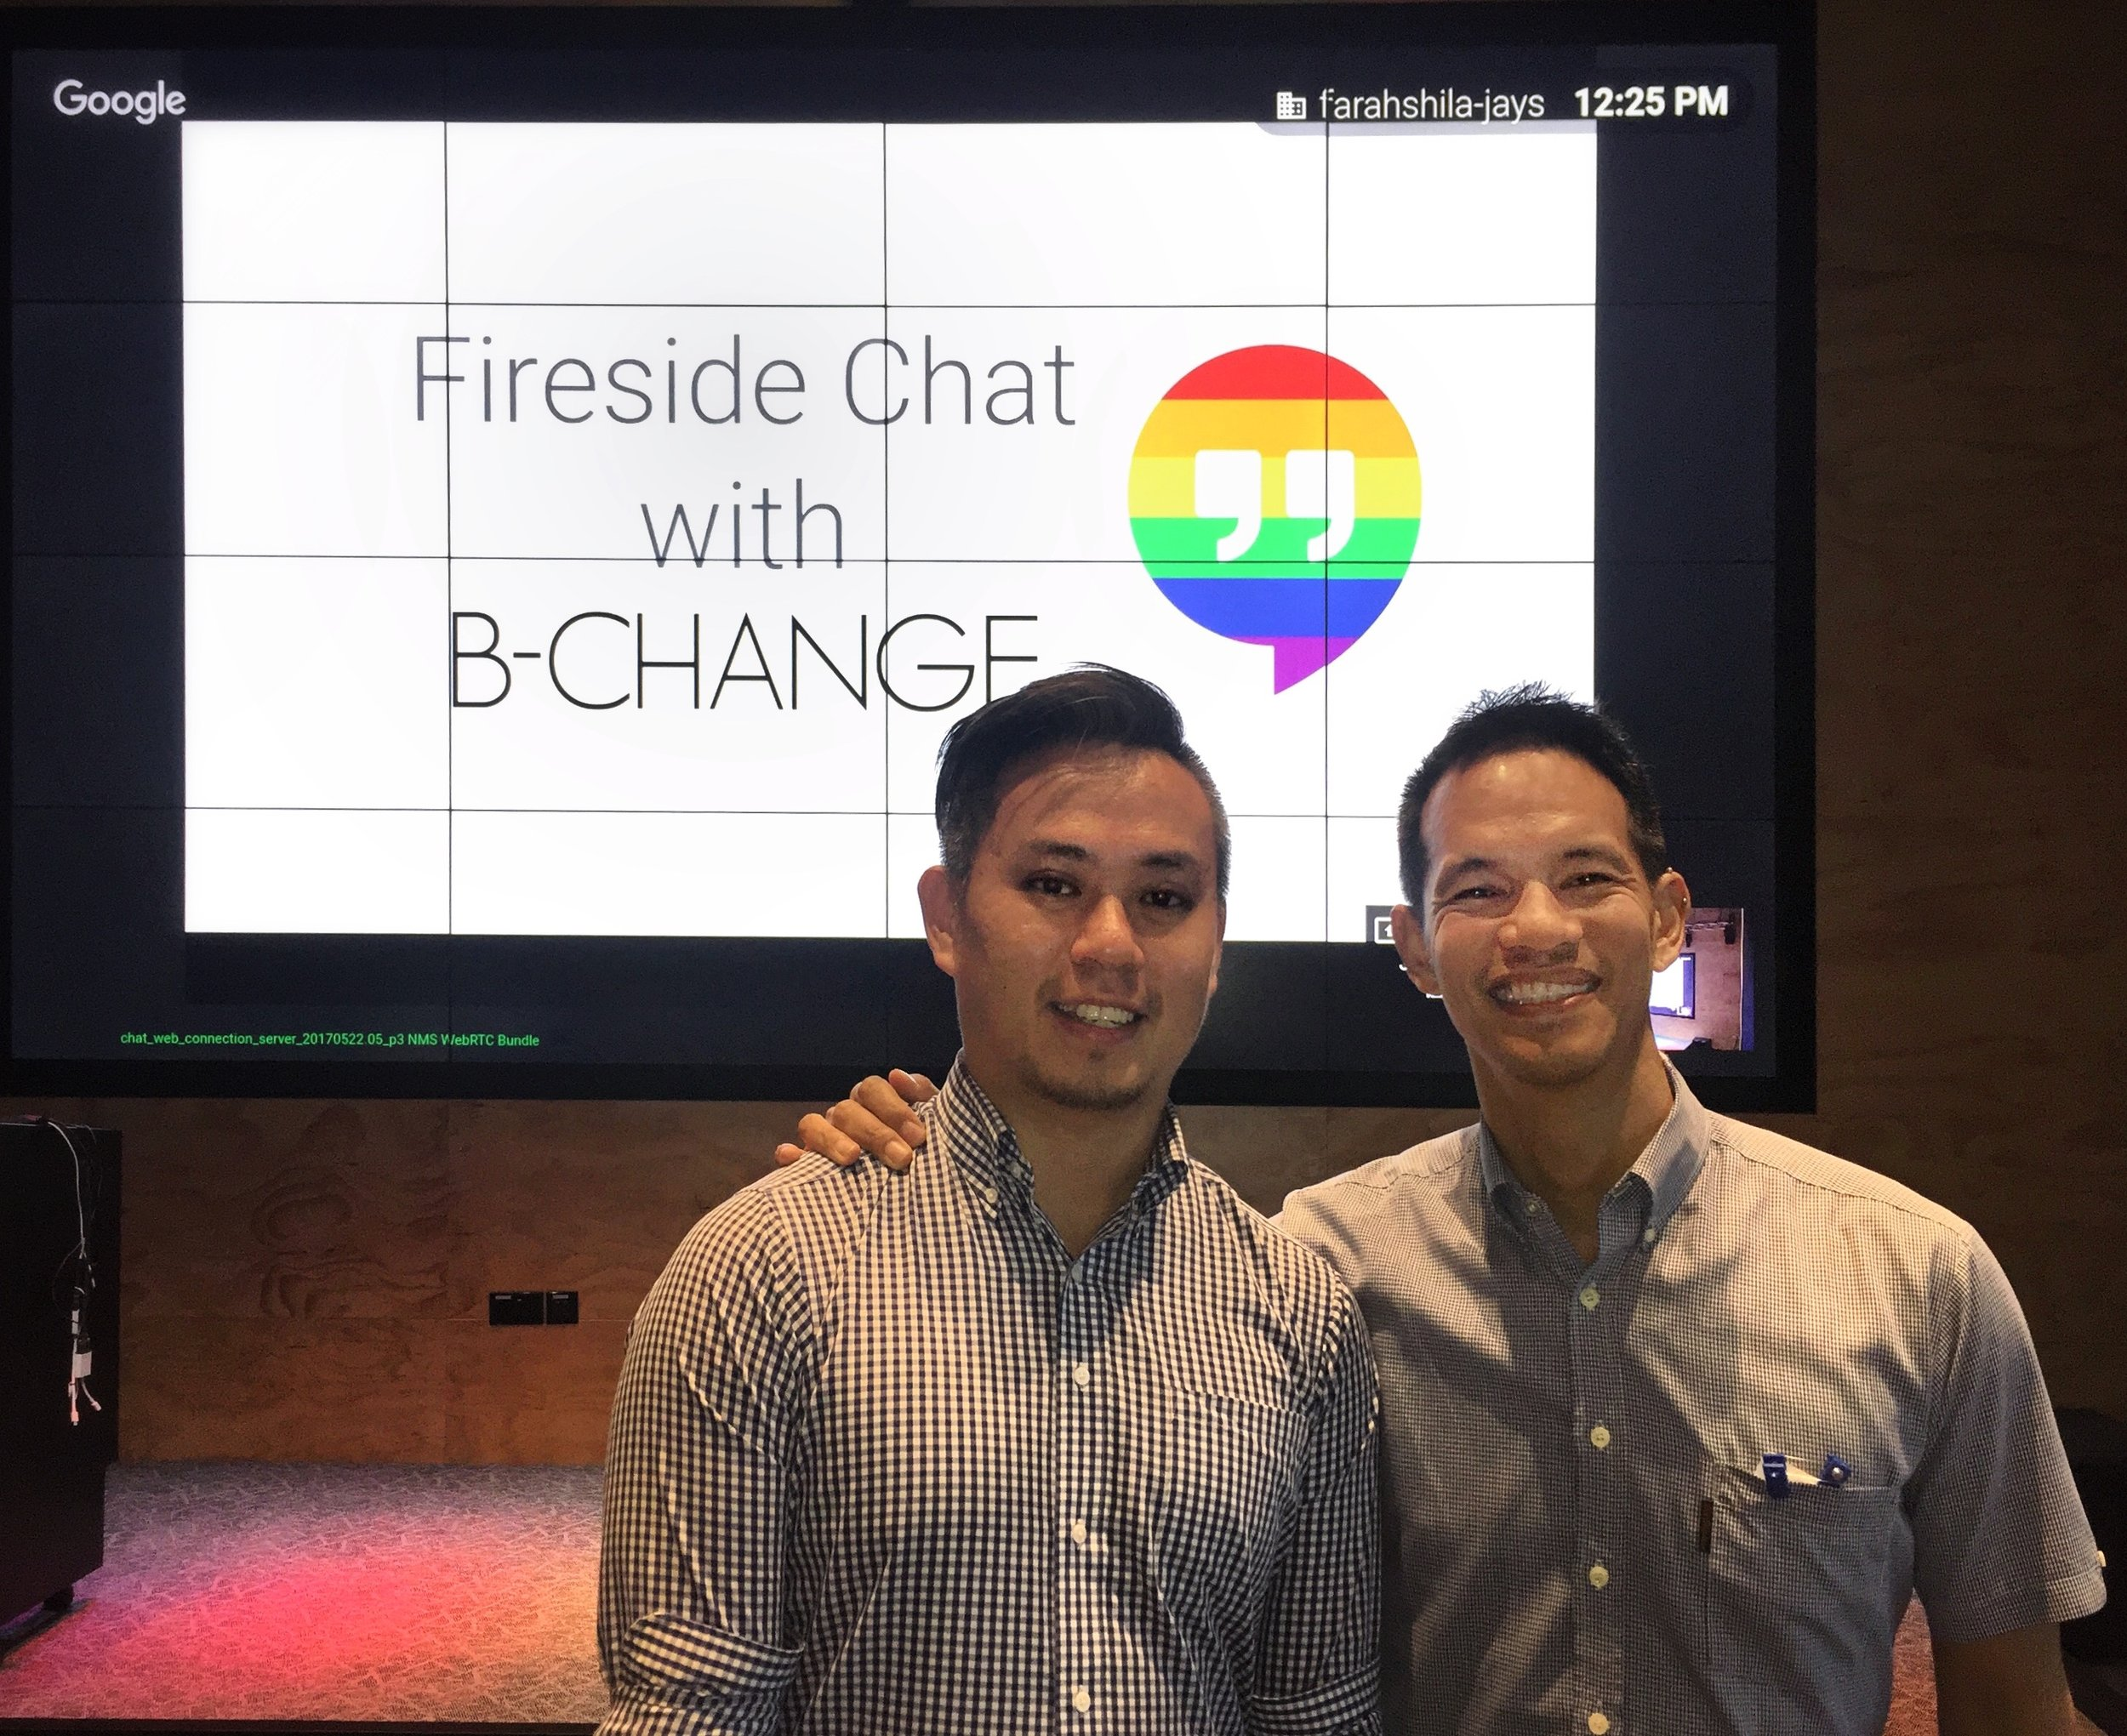 B-Change's founder Laurindo Garcia and impact research lead Bryan Choong together at Google Asia-Pacific headquarters in Singapore after a 'fireside' talking about the evolution of Be.